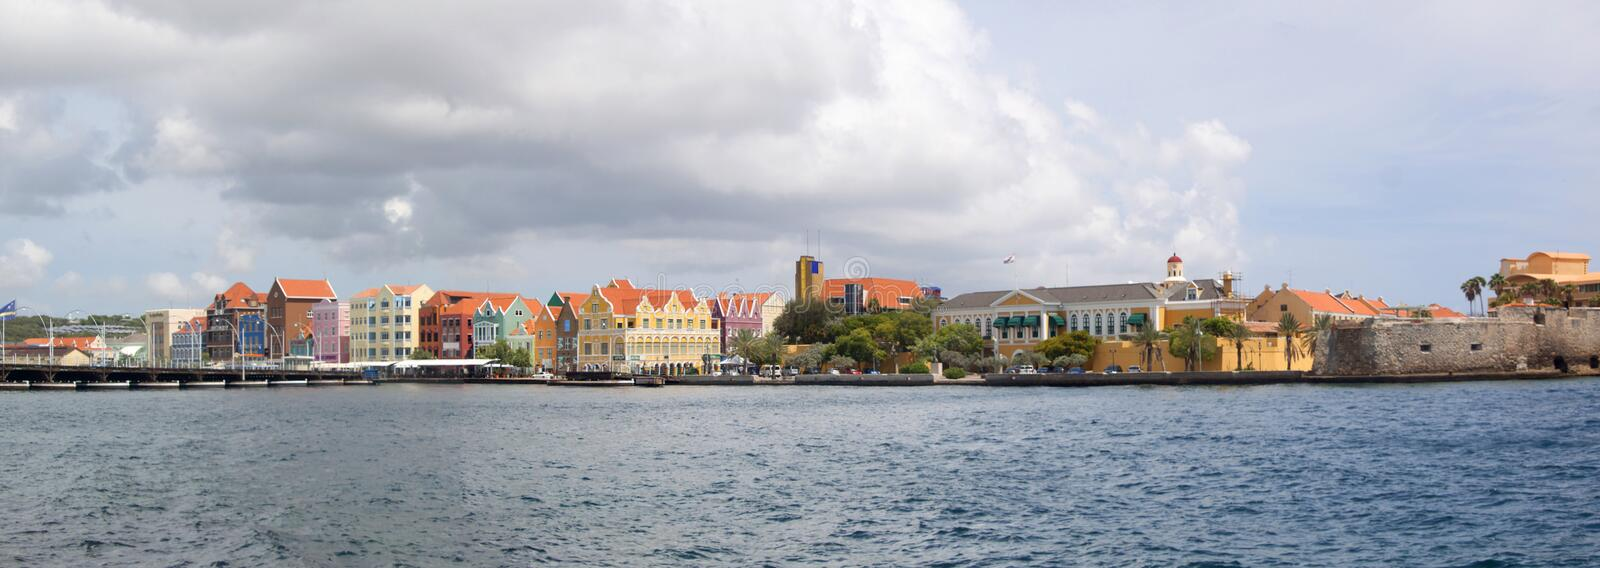 Willemstad, Curacao obraz stock